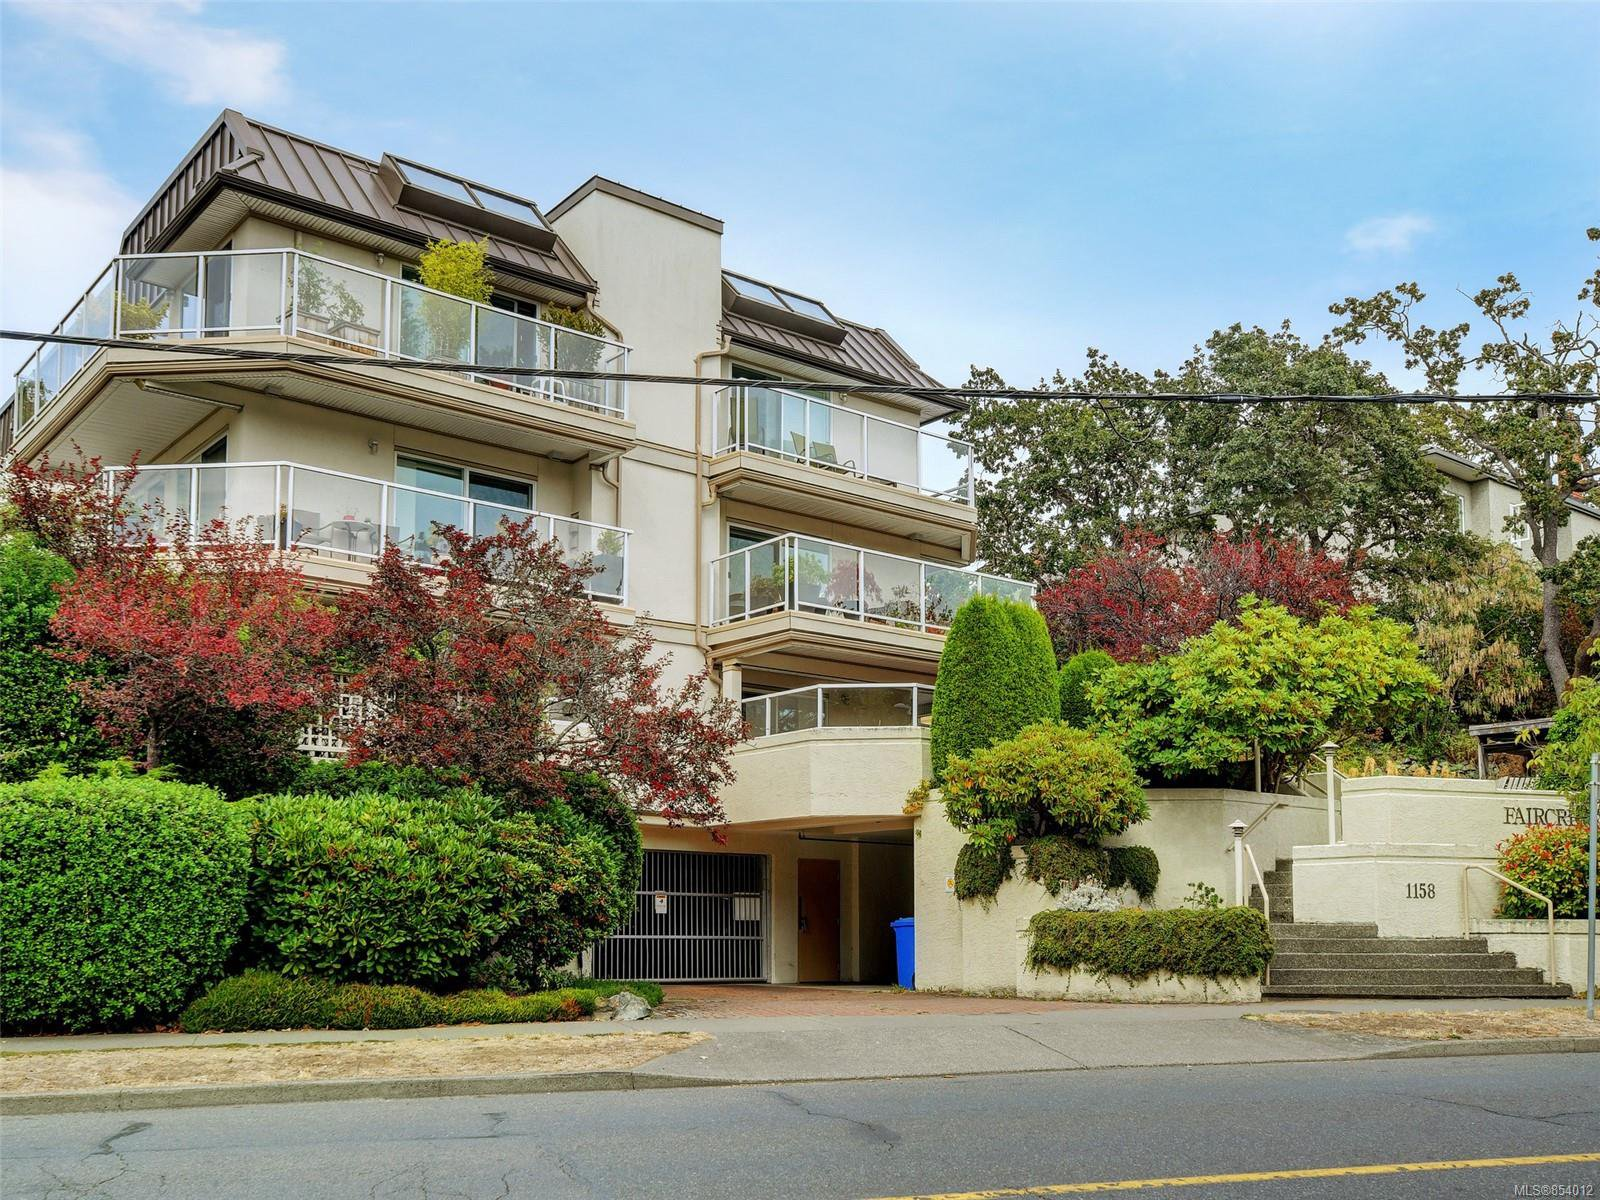 Main Photo: 103 1158 Fairfield Rd in : Vi Fairfield West Condo for sale (Victoria)  : MLS®# 854012